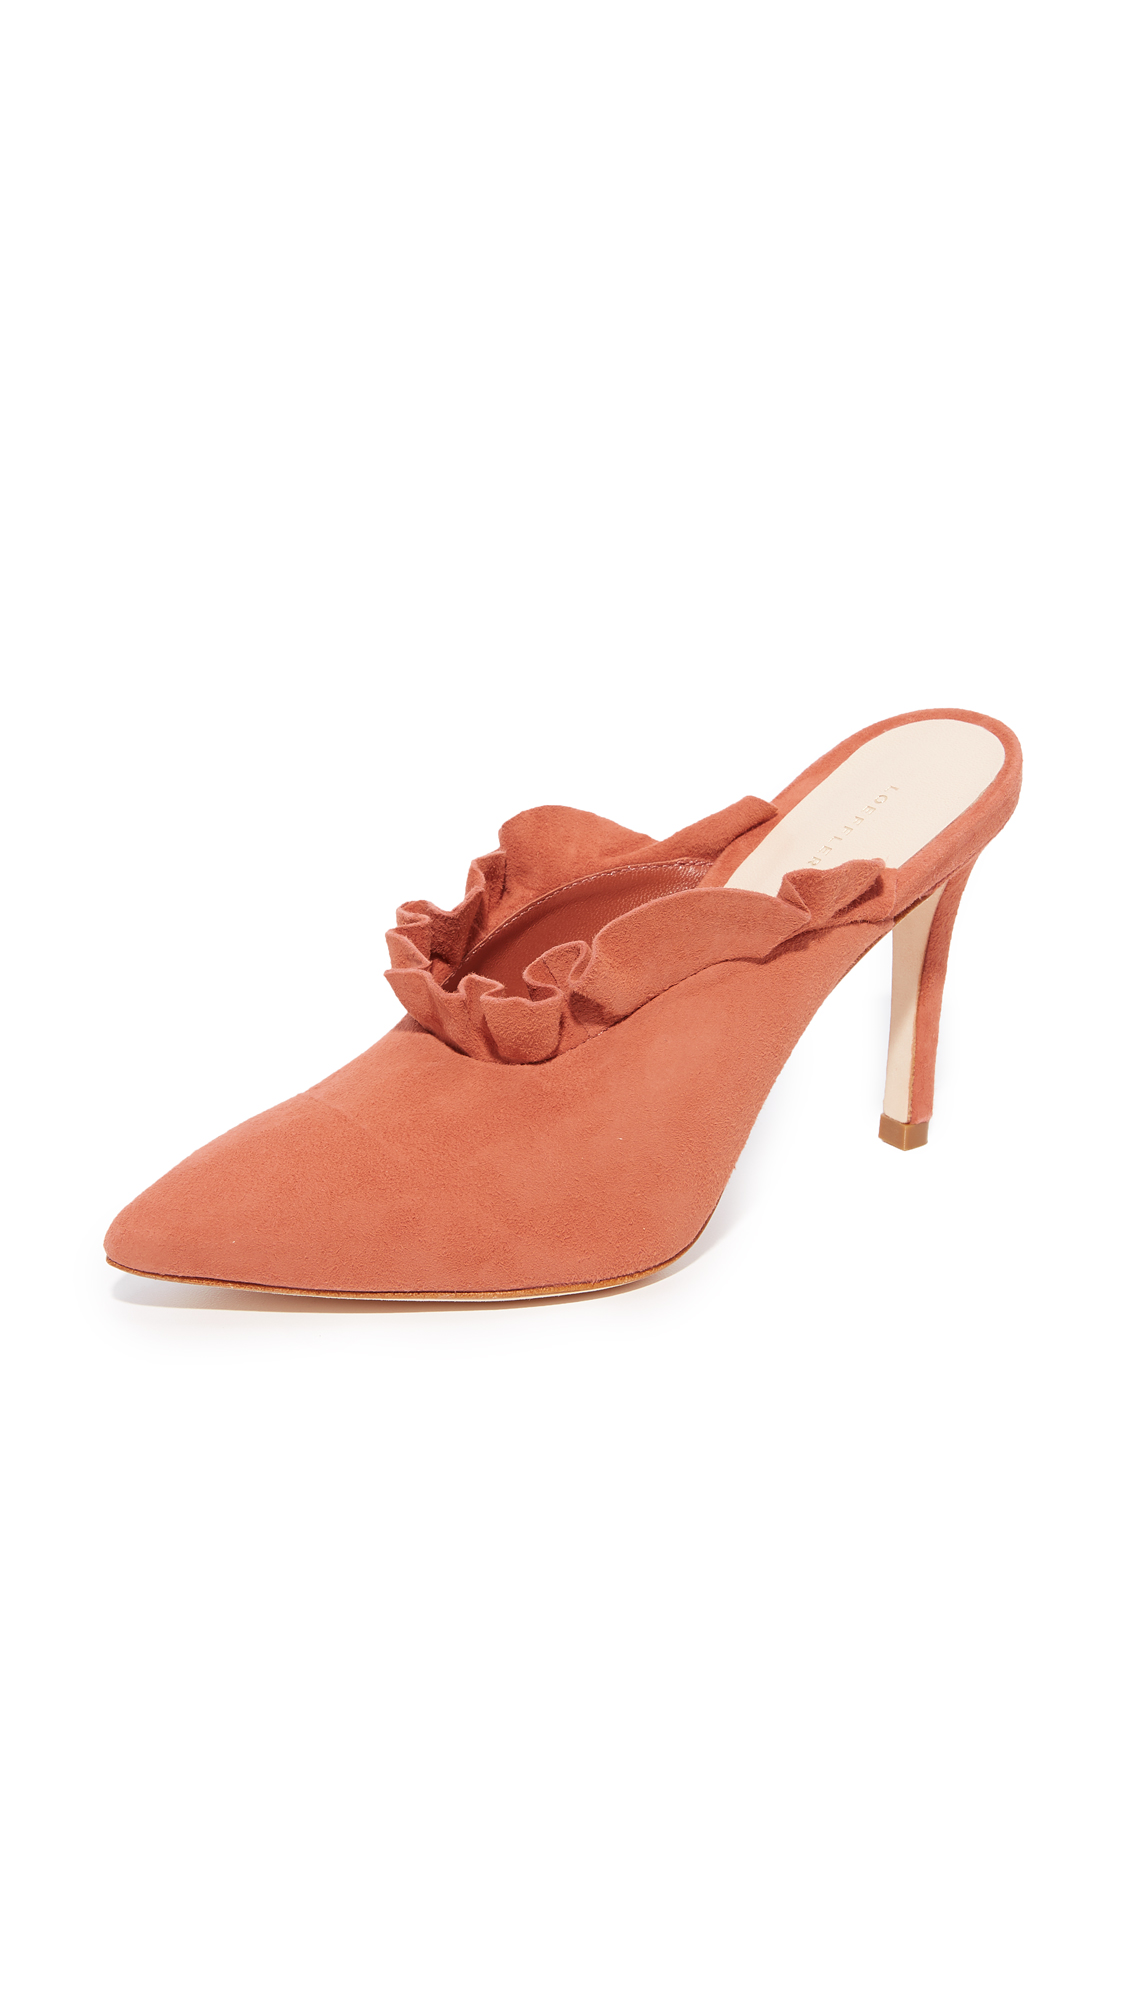 Loeffler Randall Langley Ruffle Mules - Dusty Rose